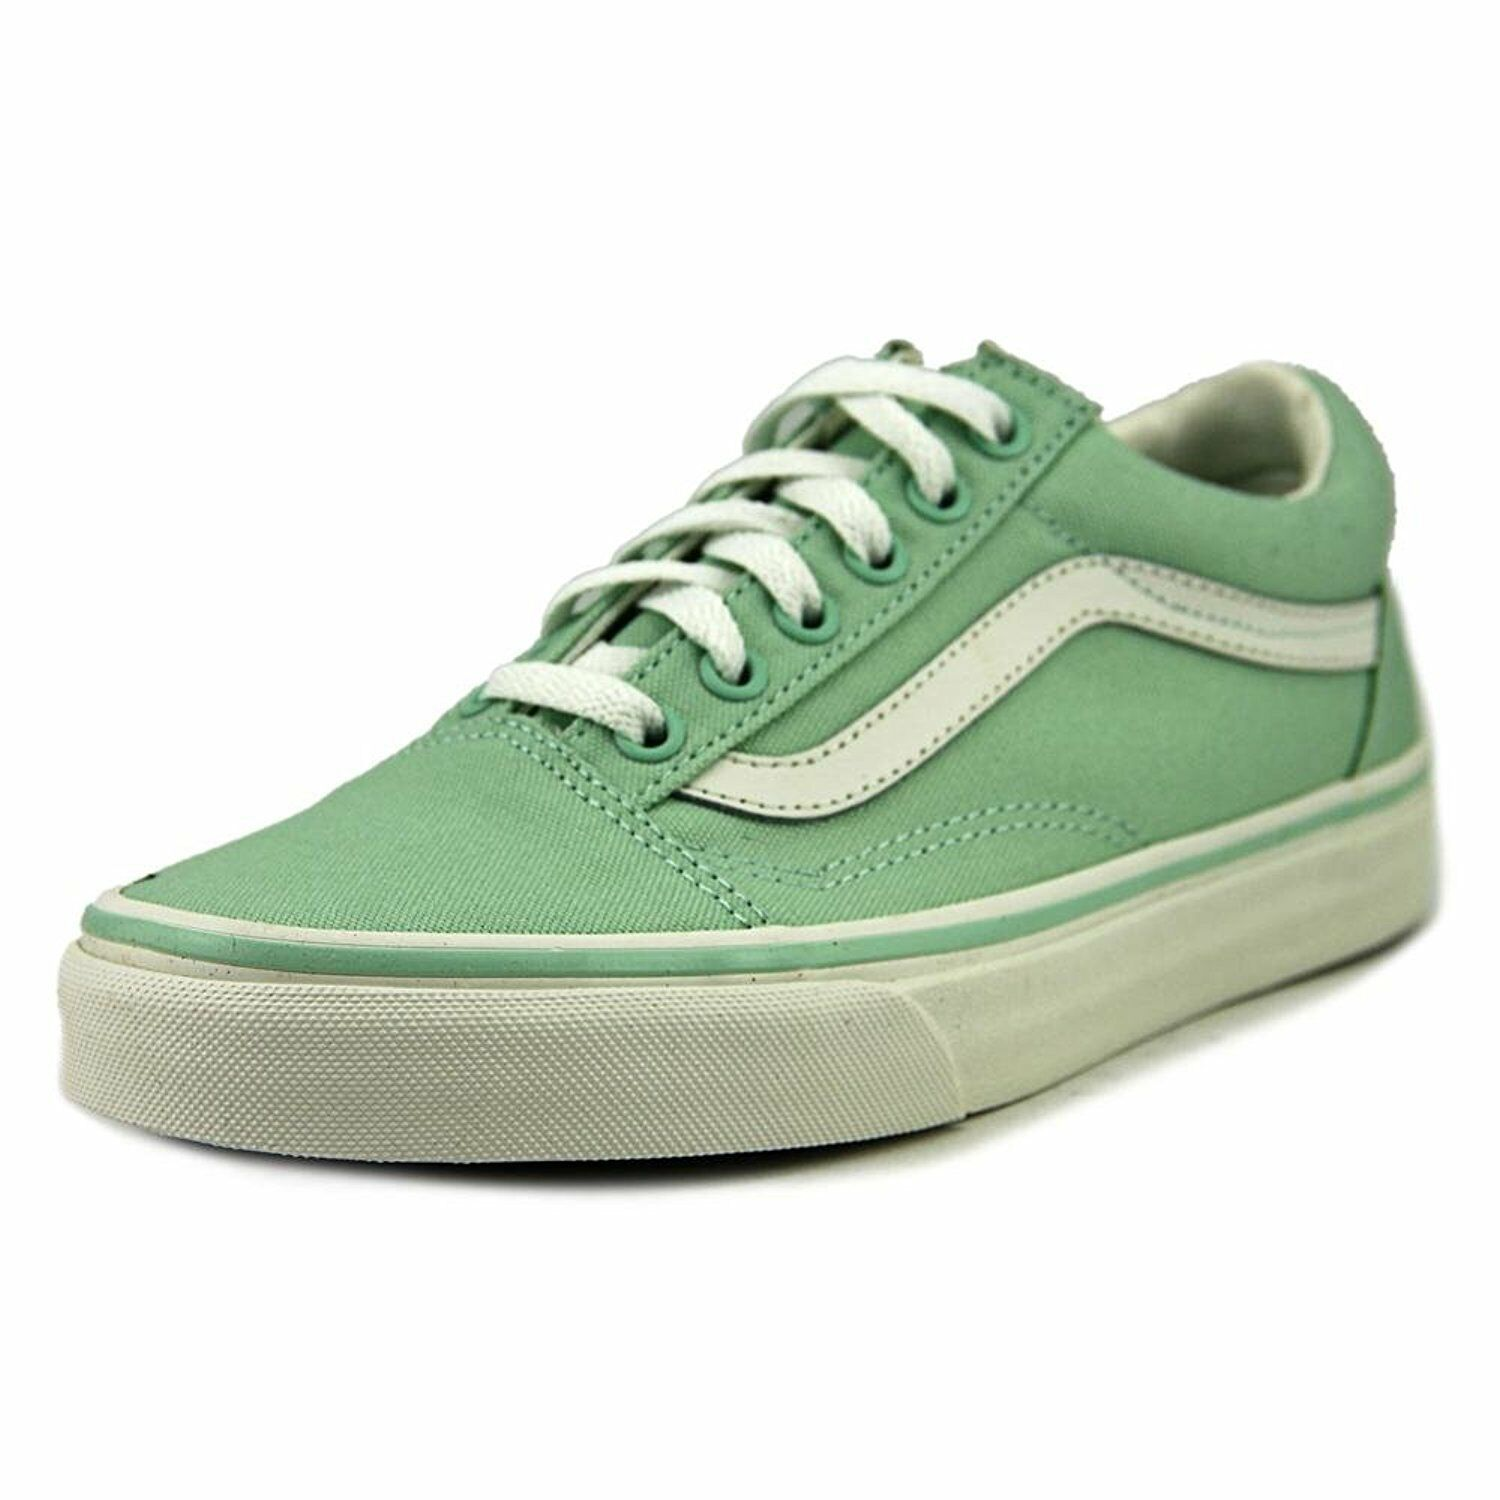 Vans Old Skool Canvas Sneakers Green